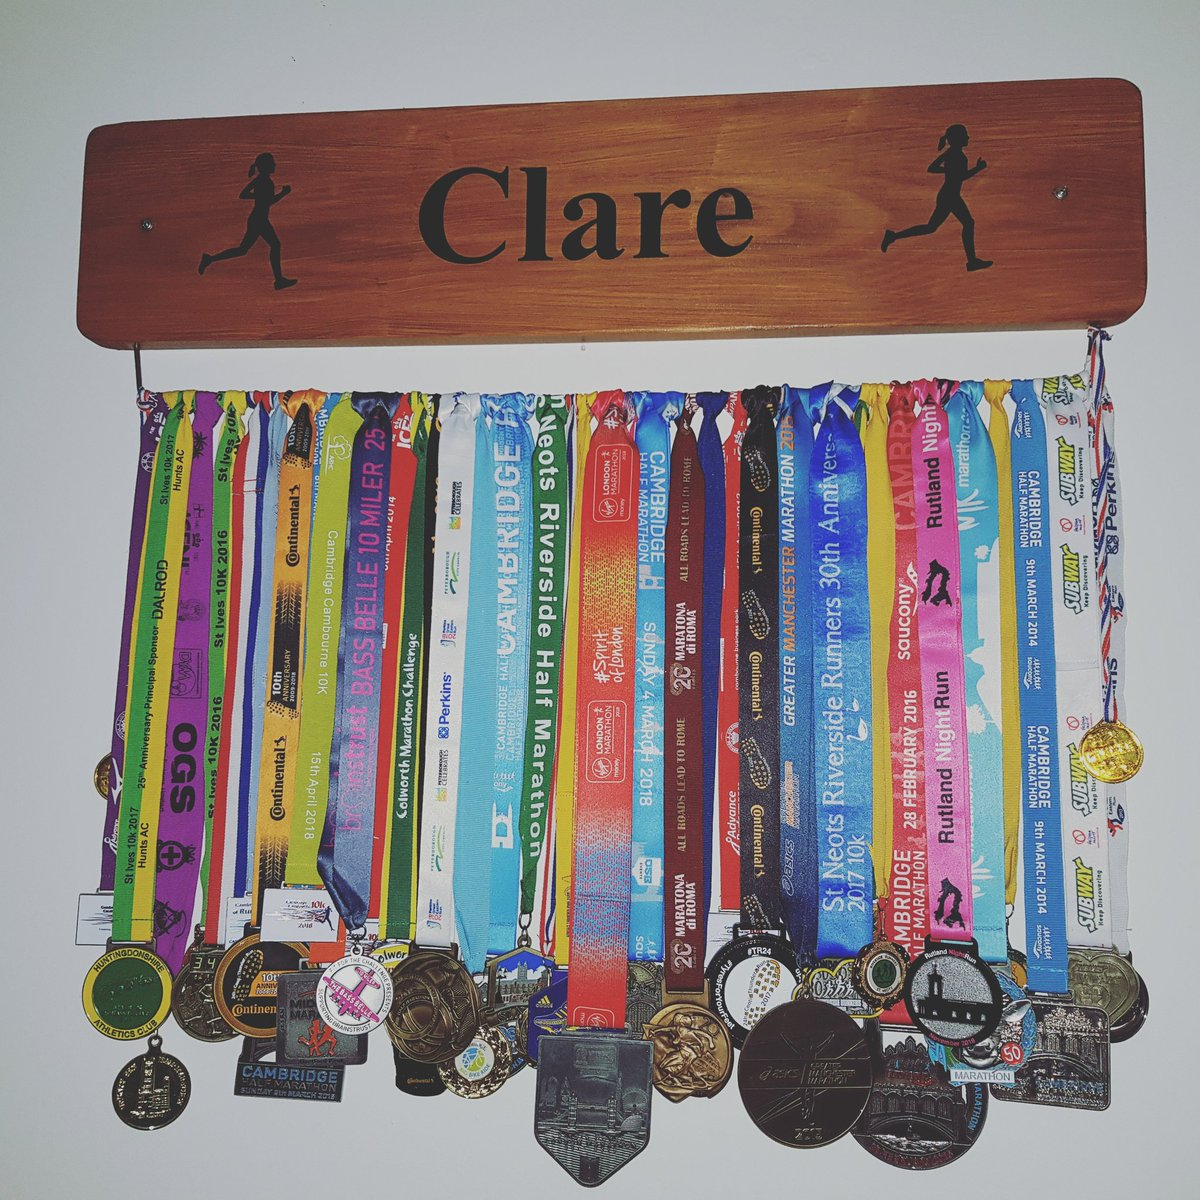 @informing_edu @UKRunChat I have, my husband bought it for me a few years ago: